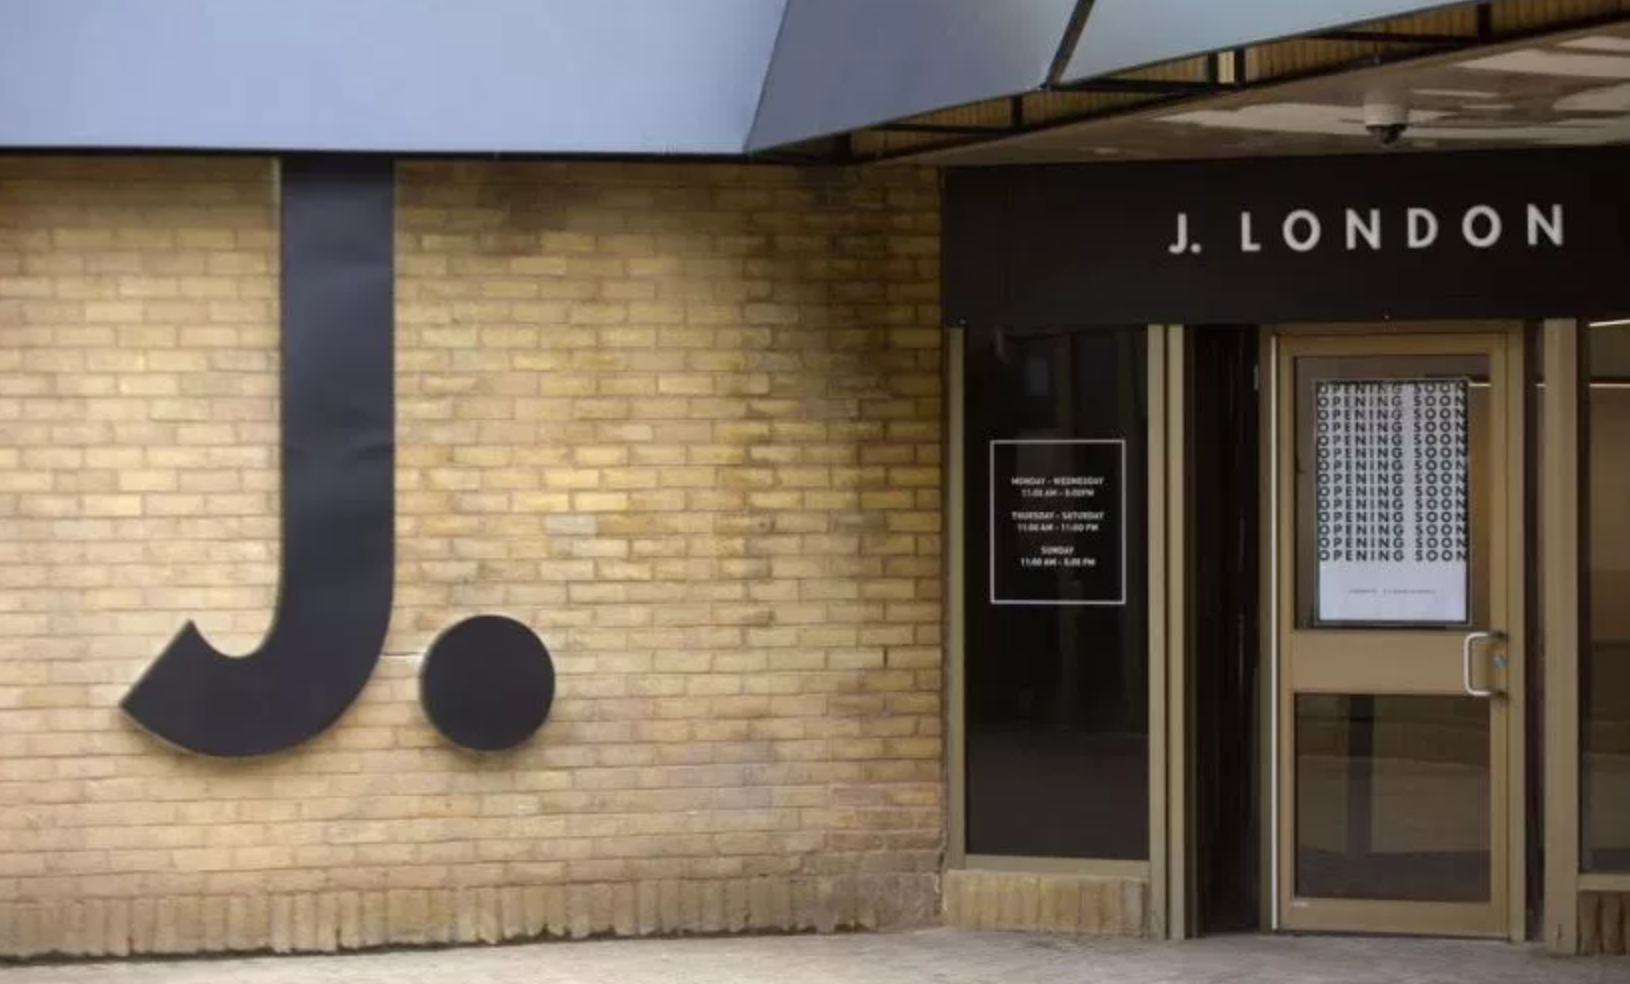 J. London has external signage ready for their opening Wednesday. (Mike Hensen/The London Free Press)